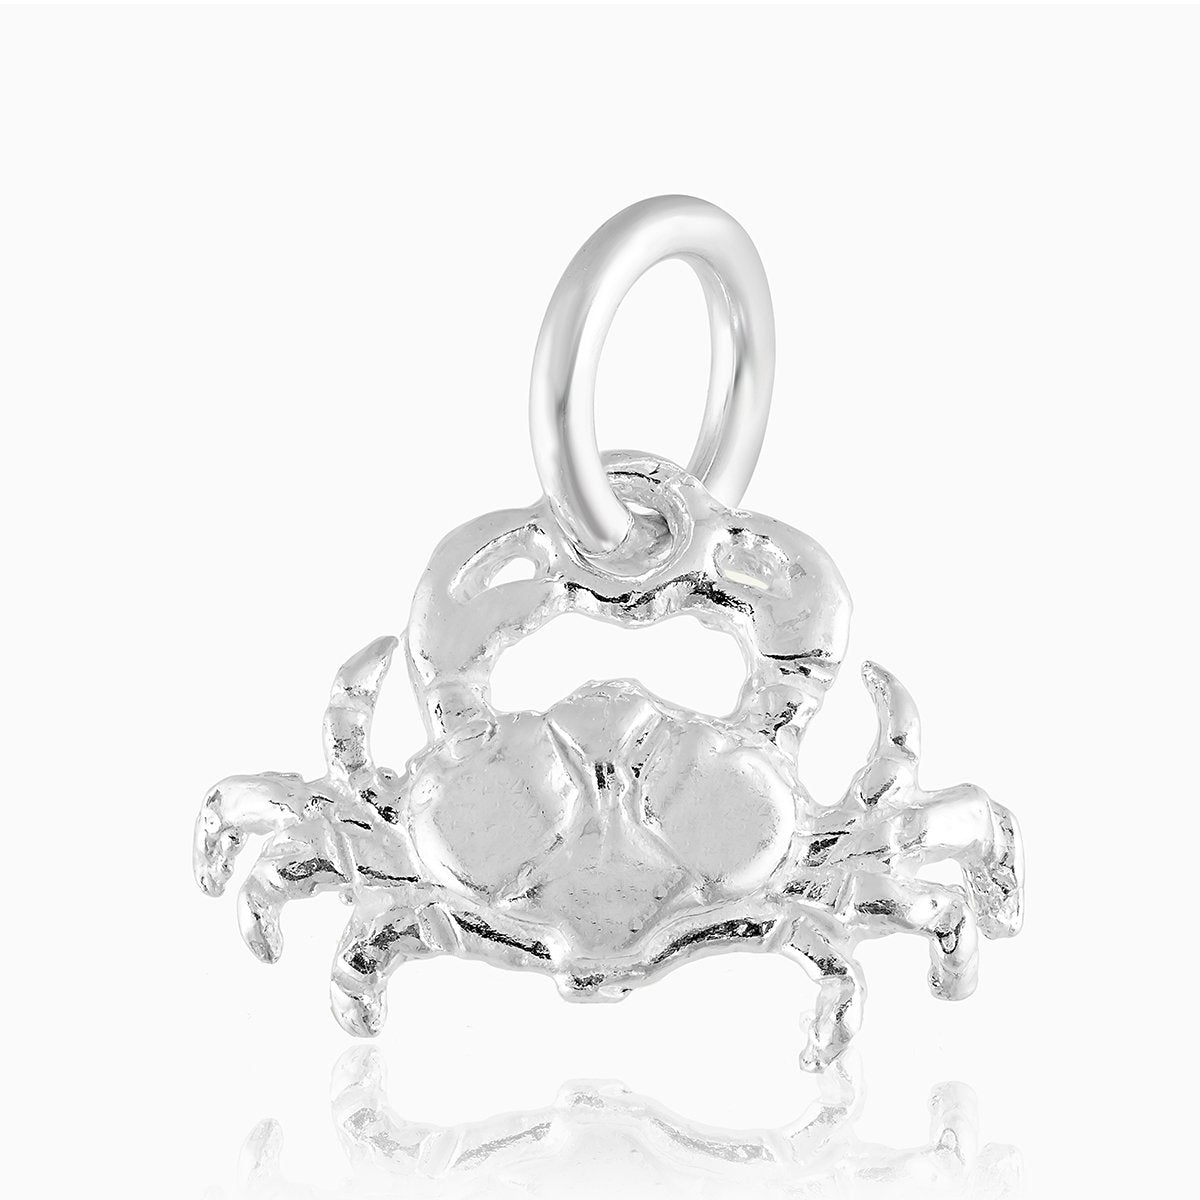 Product title: Cancer Silver Charm, product type: Charm